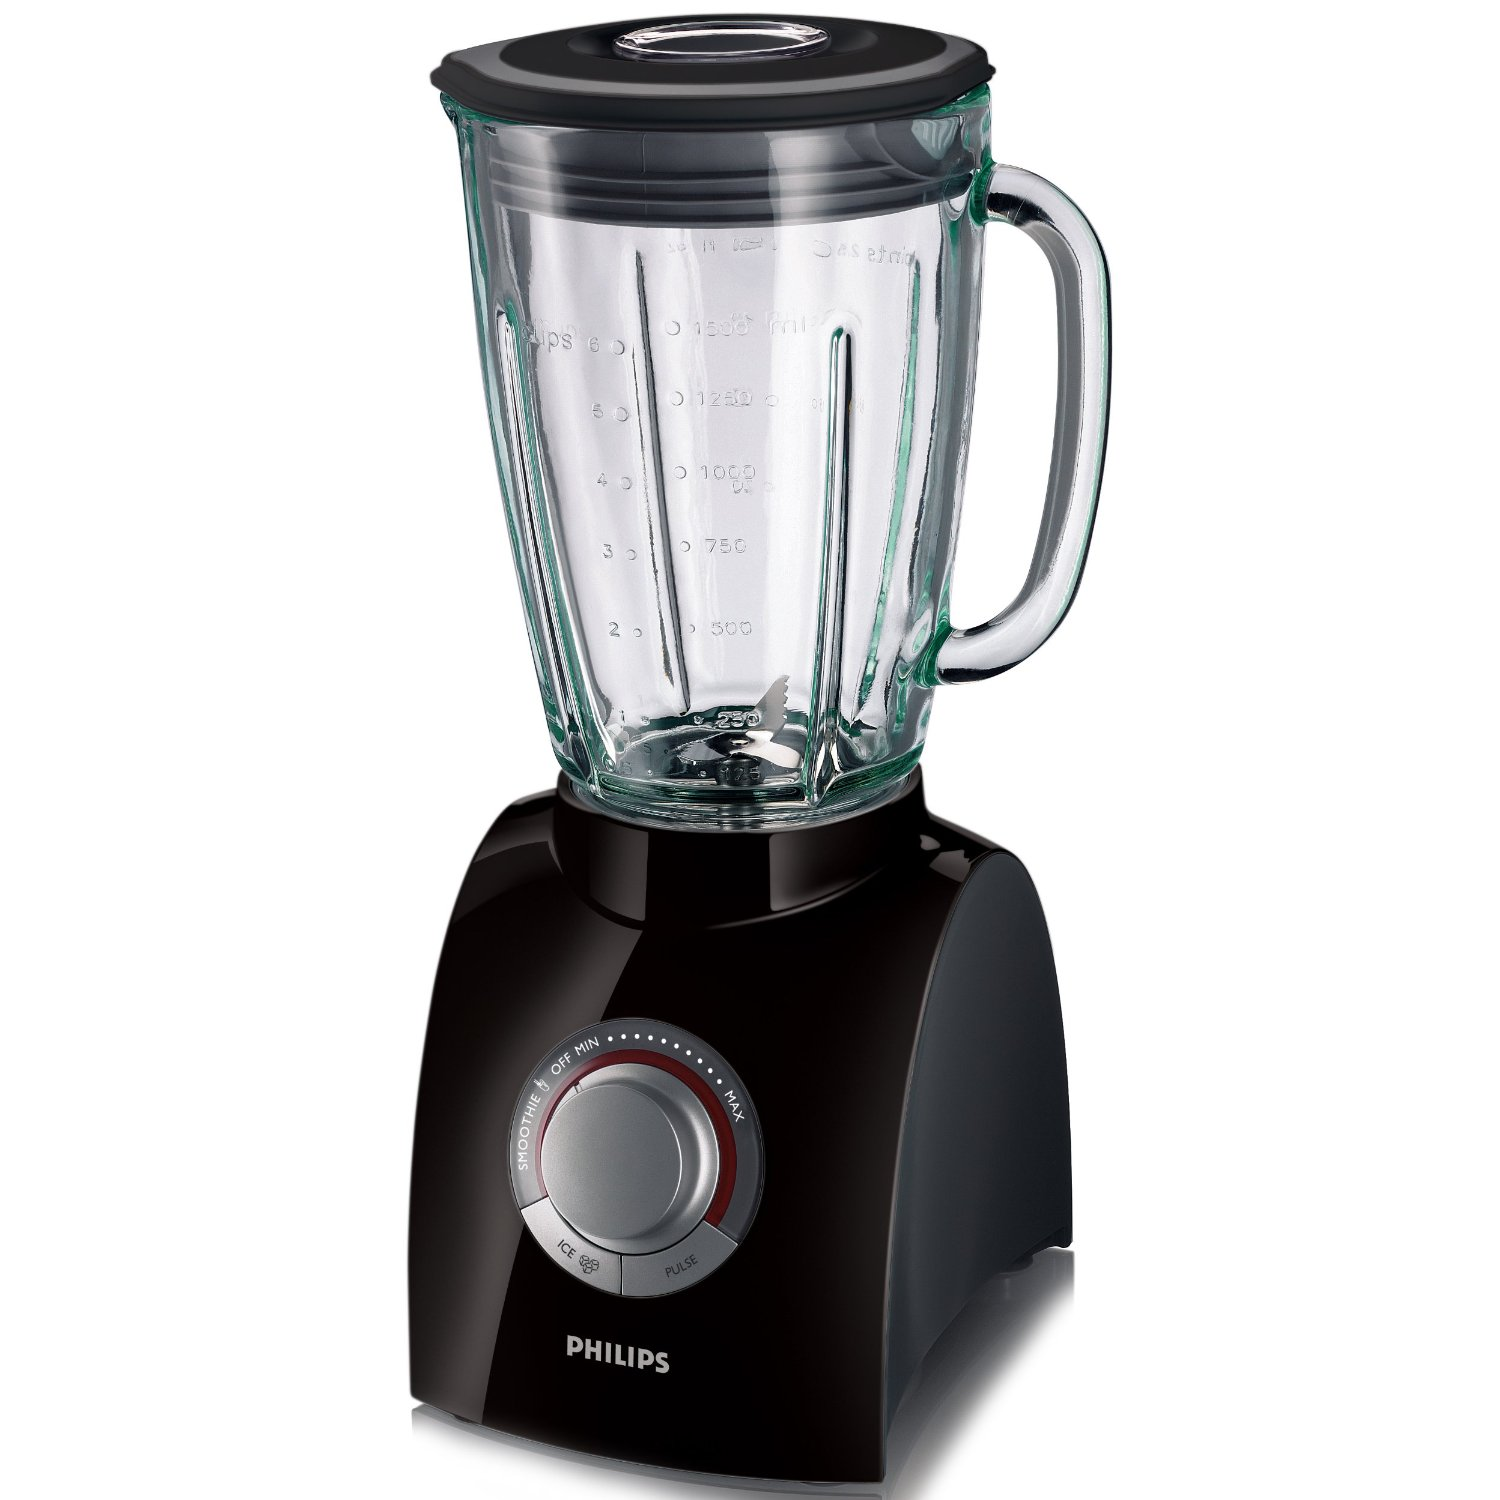 Iced Coffee Maker Reviews